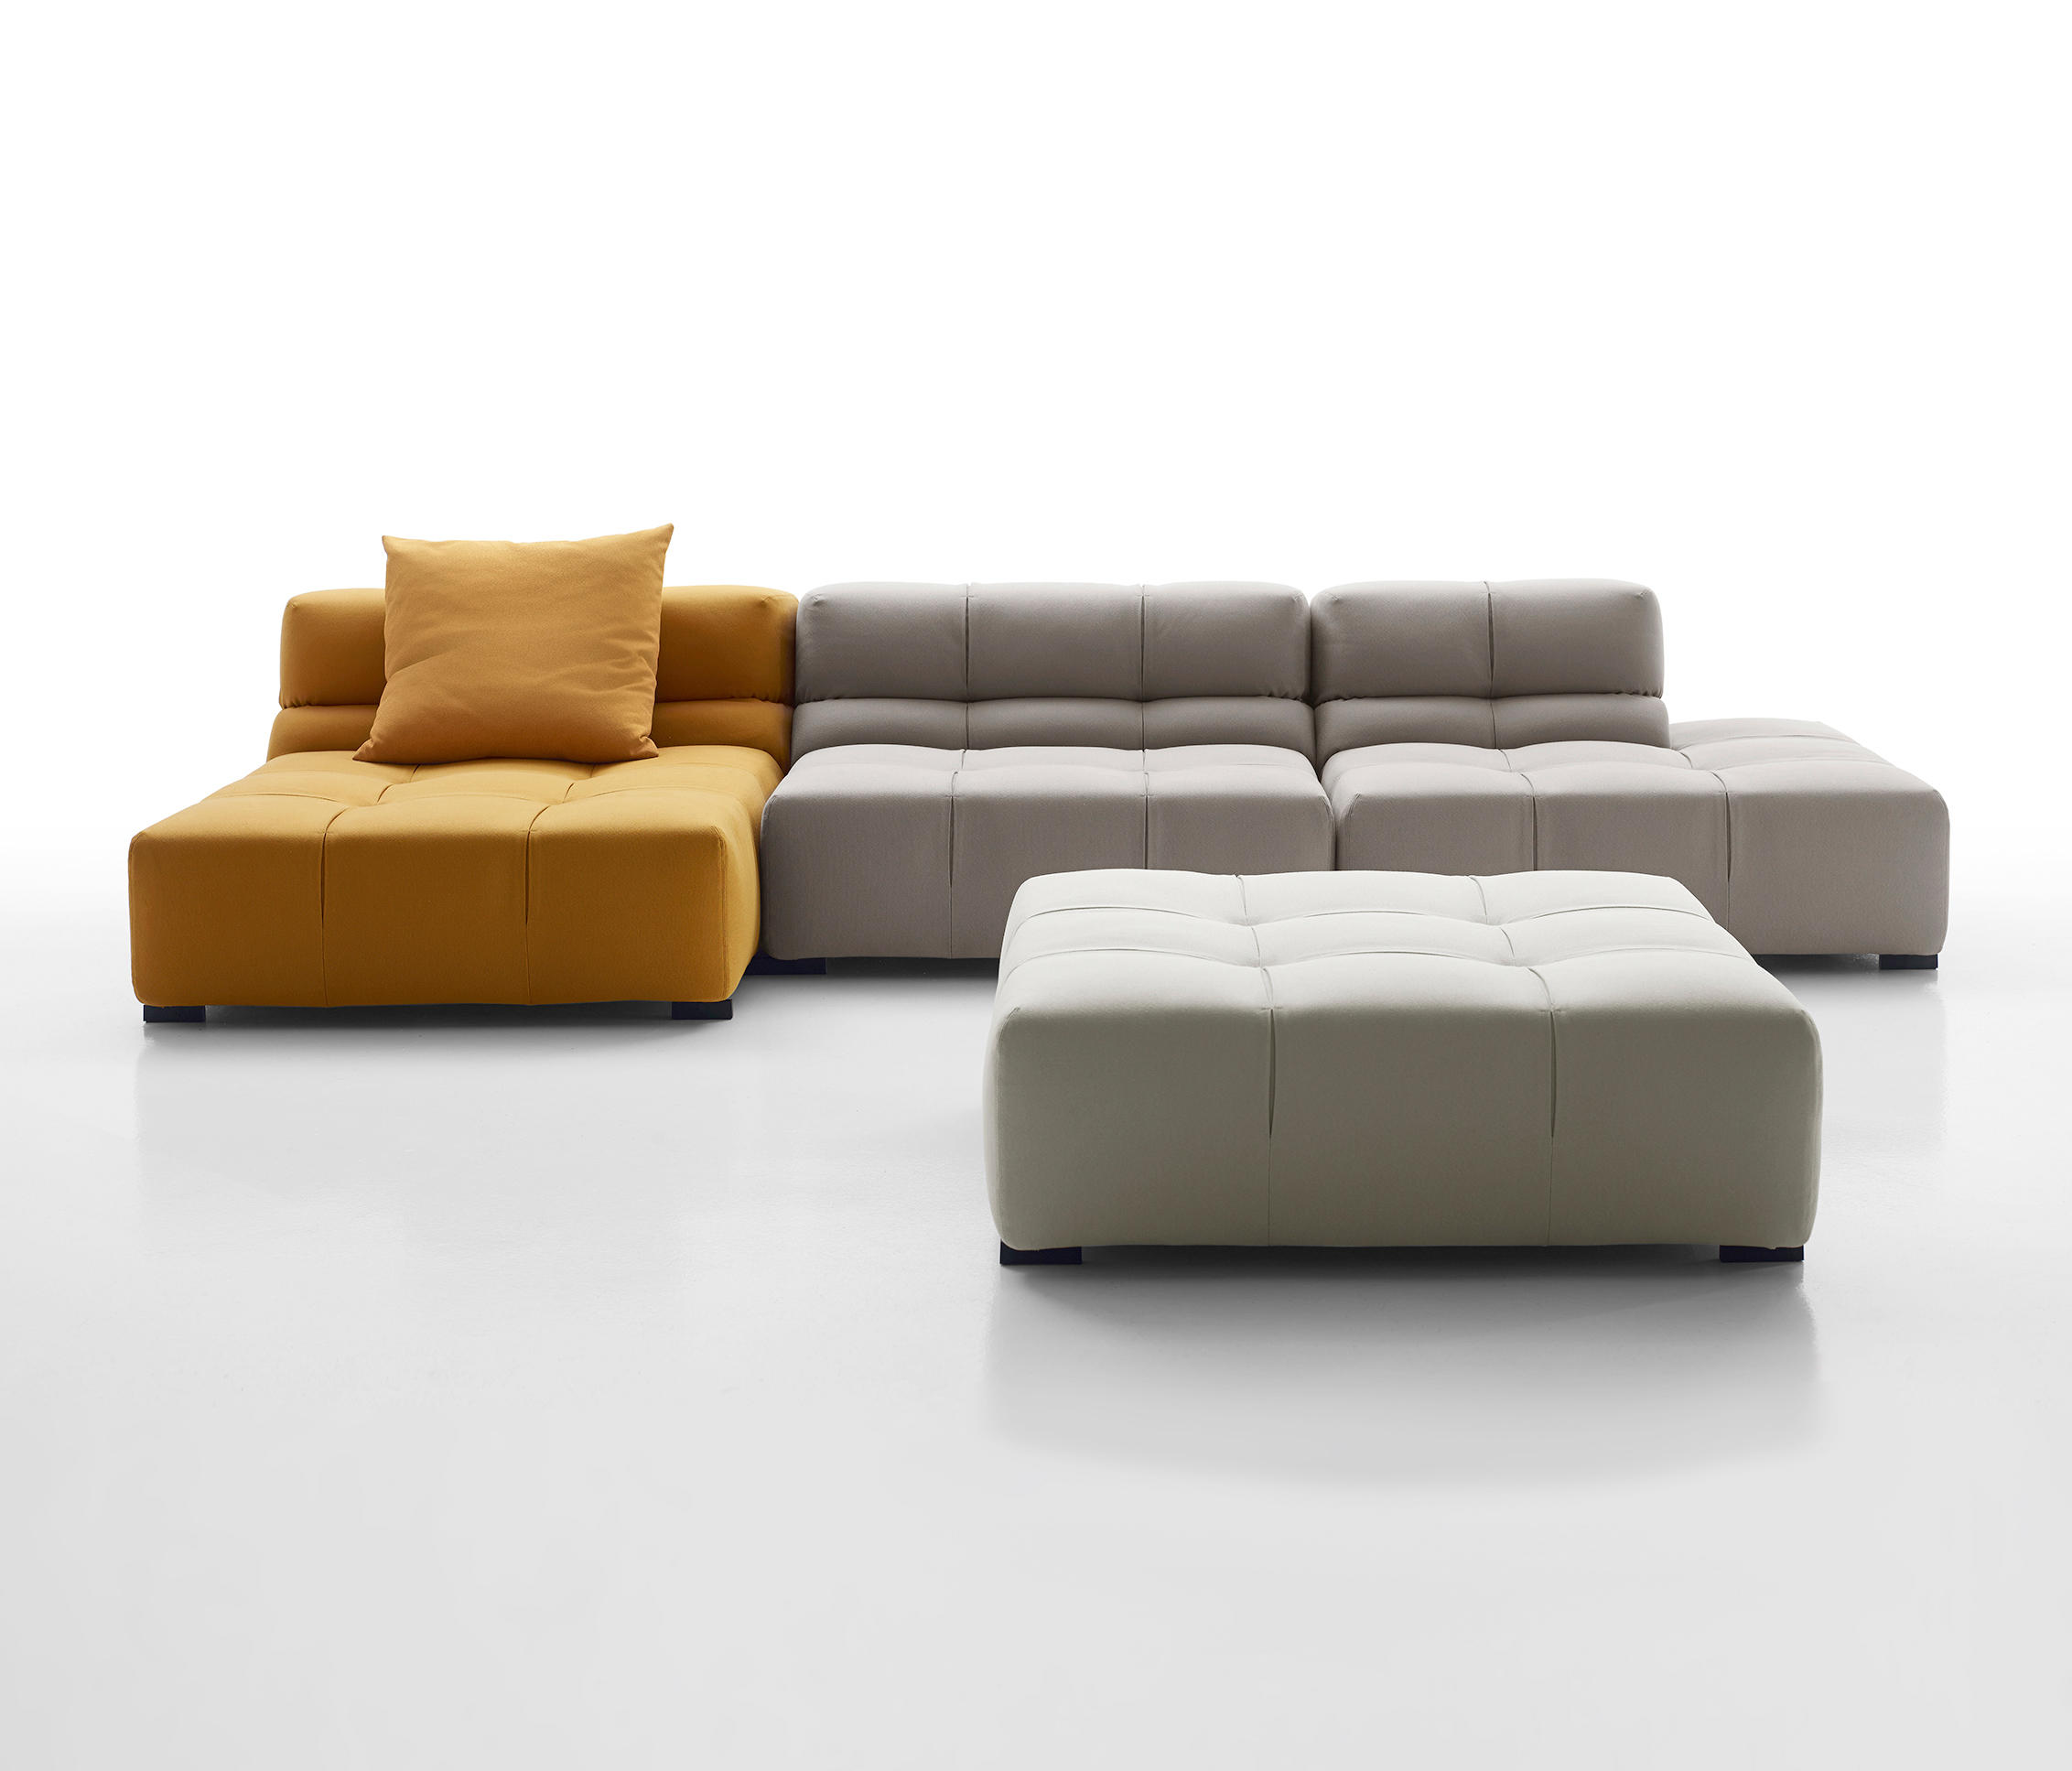 Tufty time 39 15 sofas from b b italia architonic - Sofa gratis ...